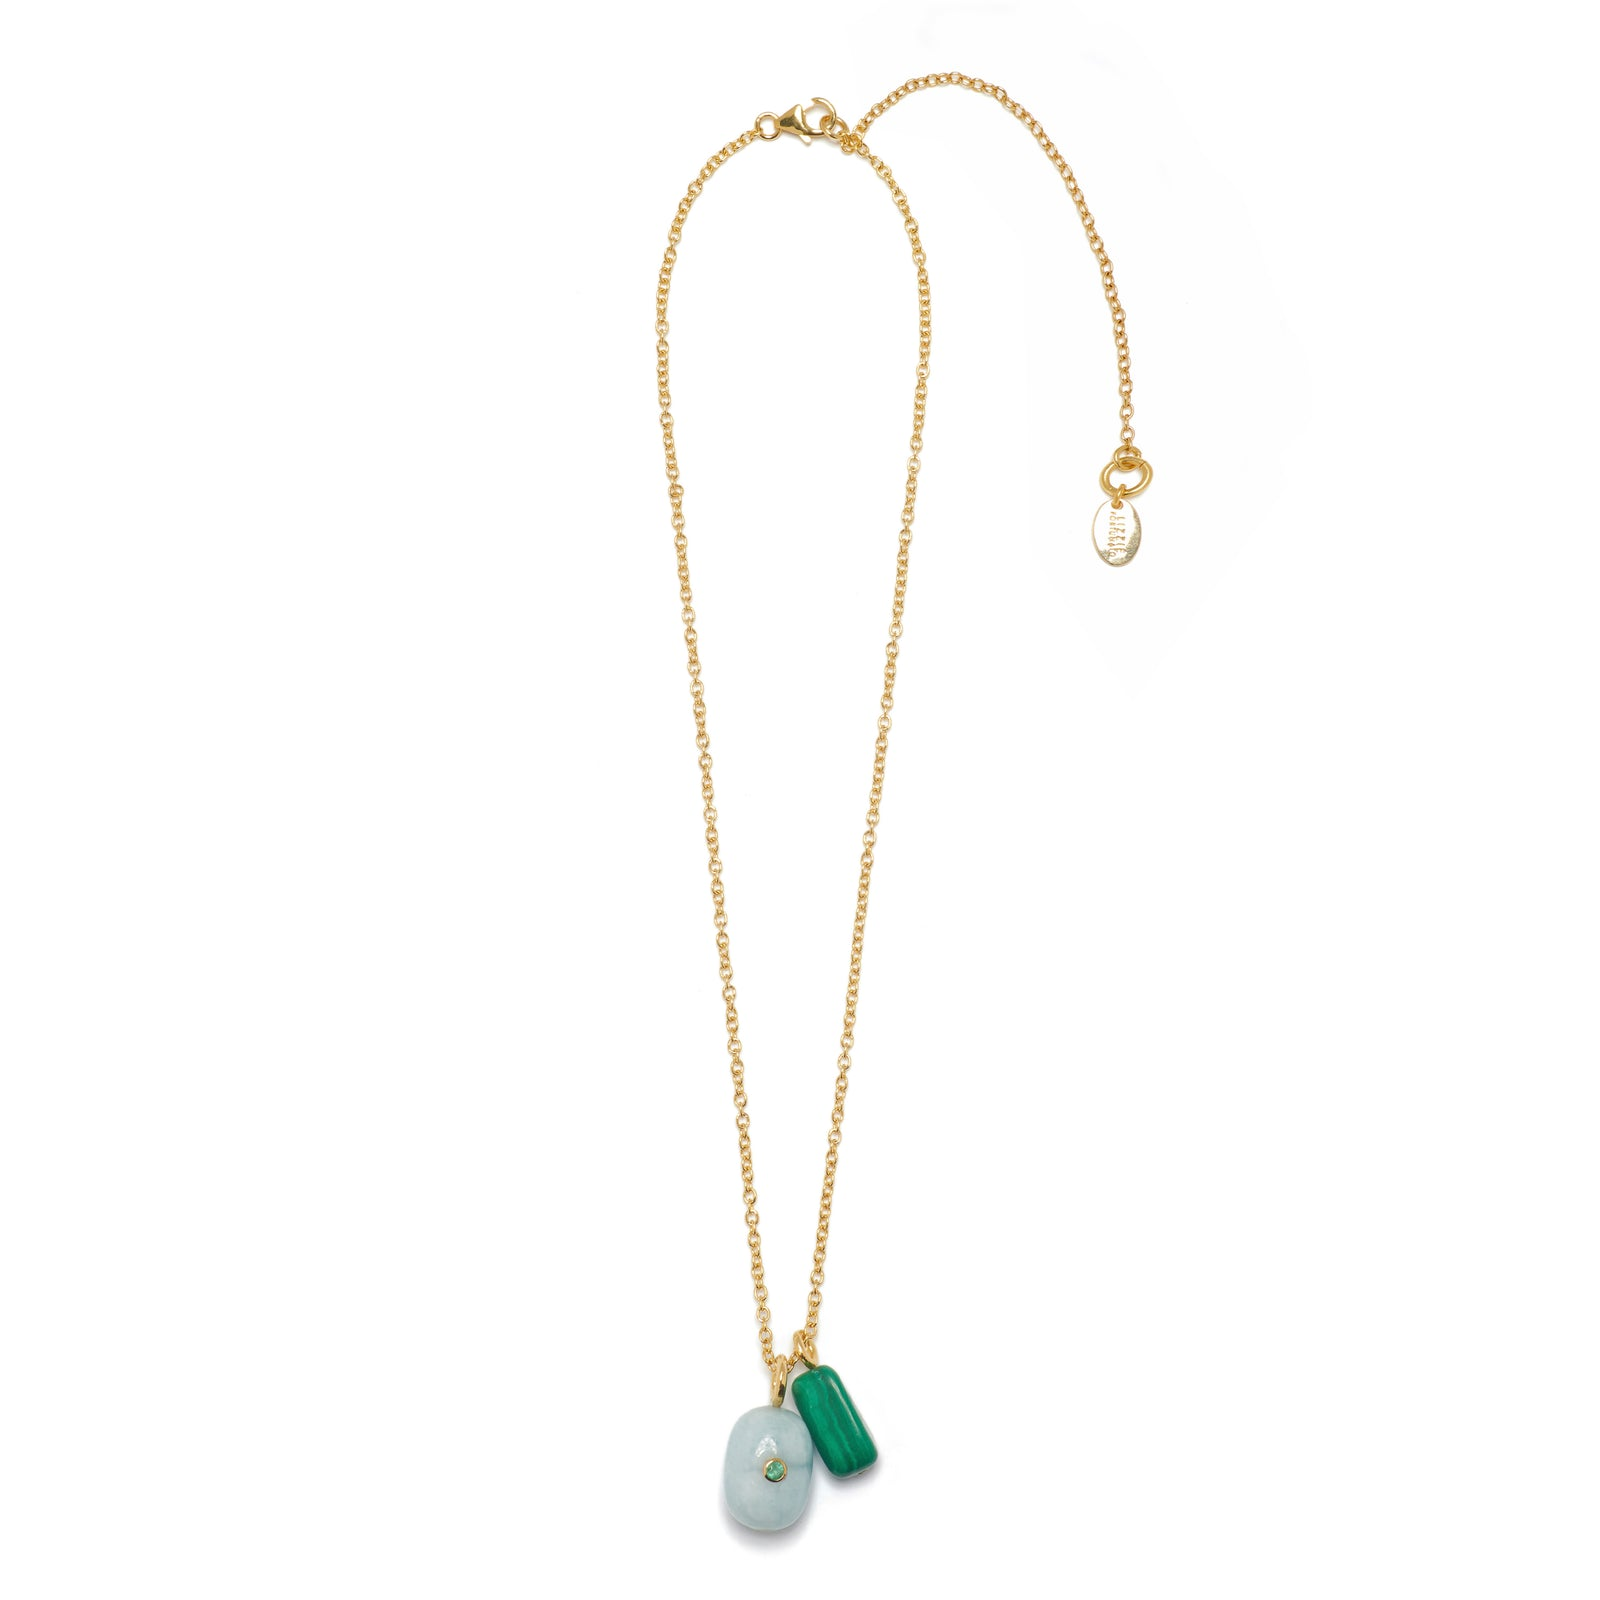 Blue Skies Oasis Necklace Lizzie Fortunato